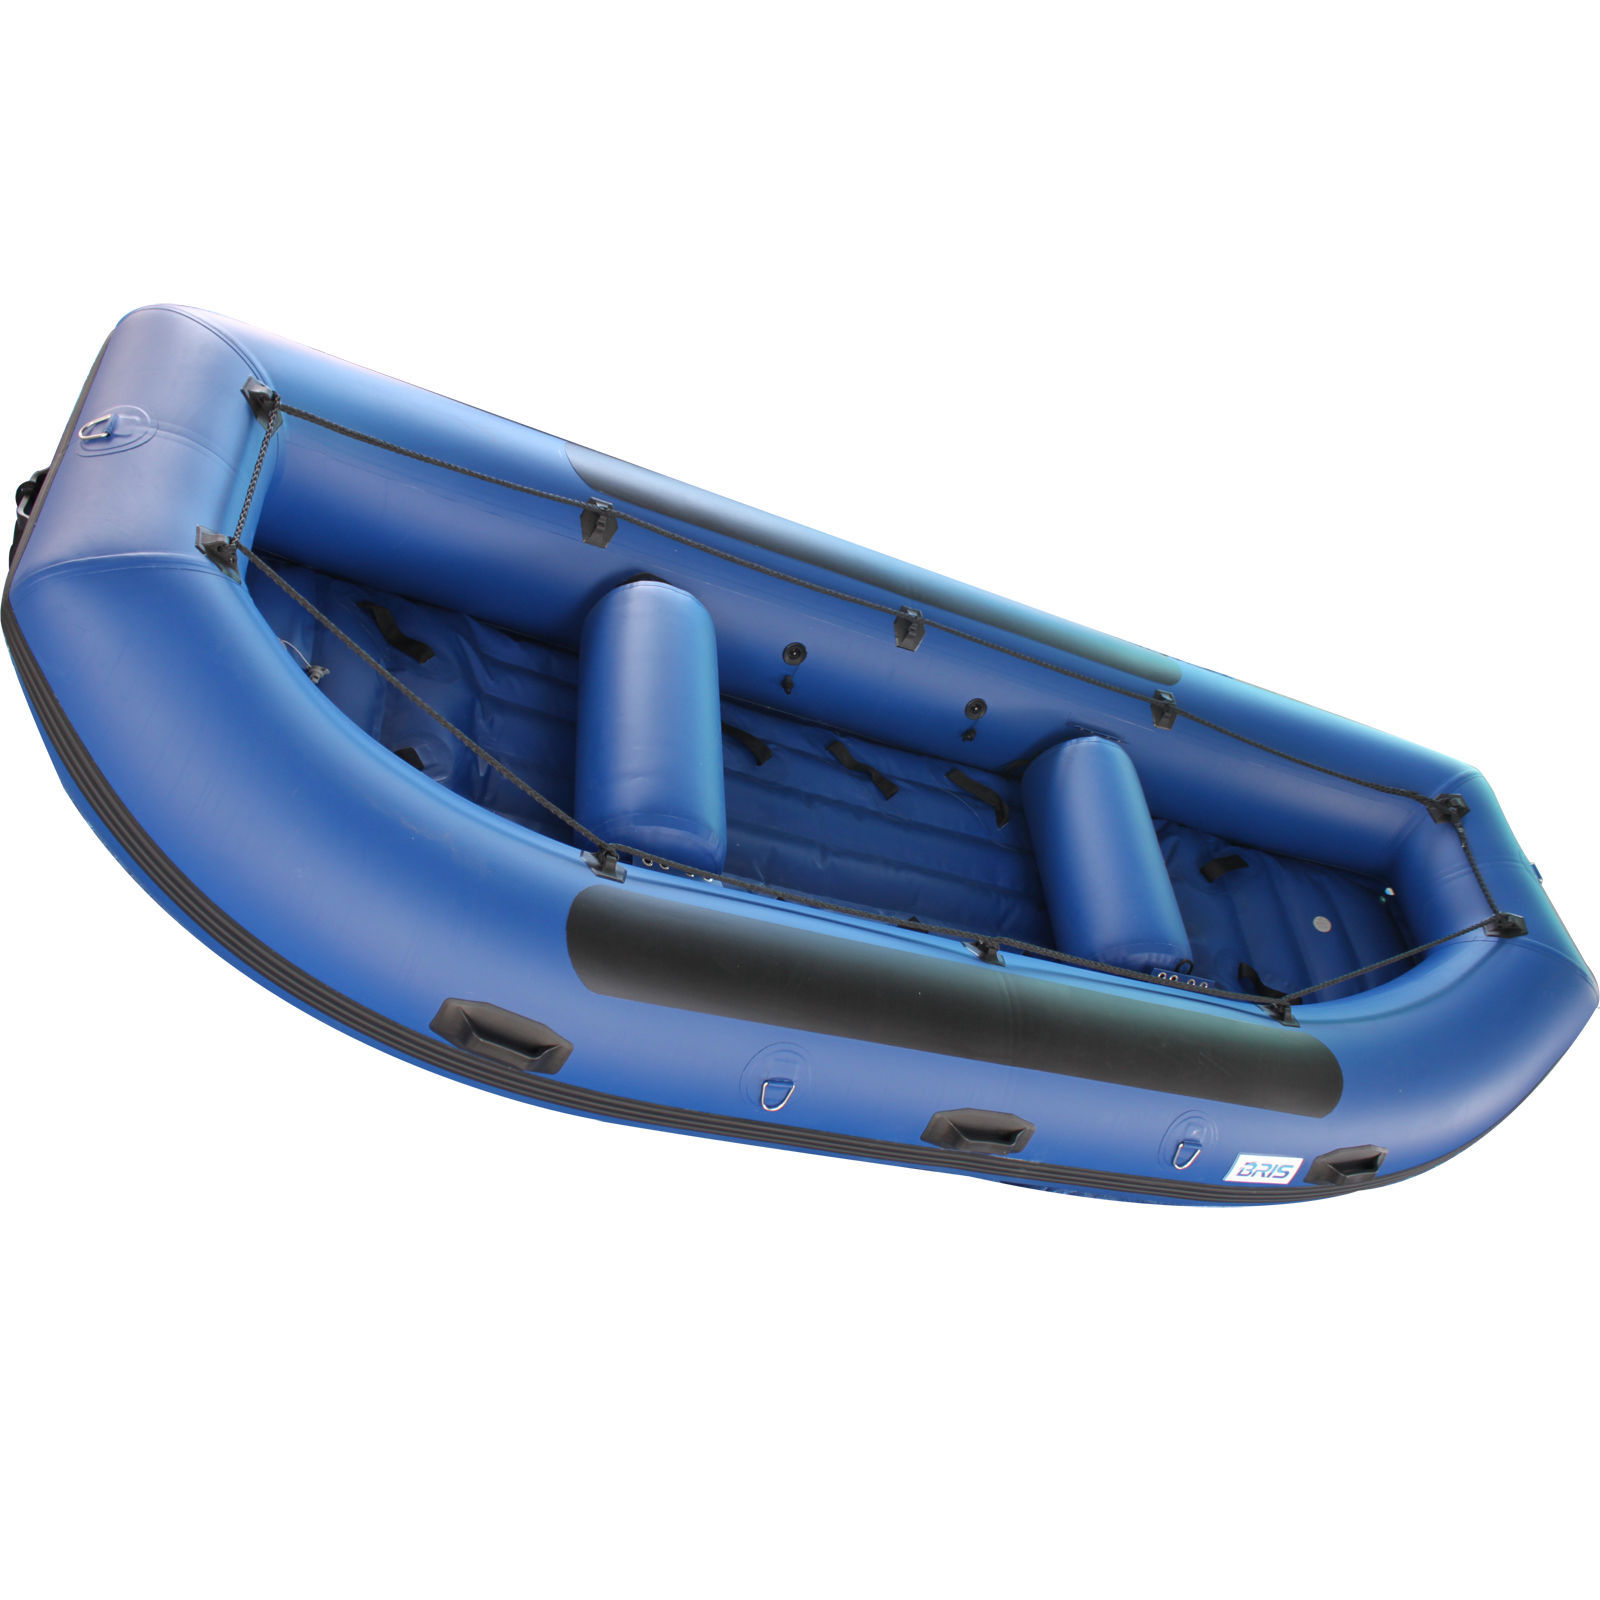 BRIS 13 ft Inflatable Raft White Water River Raft  Inflatable Boat River Lake